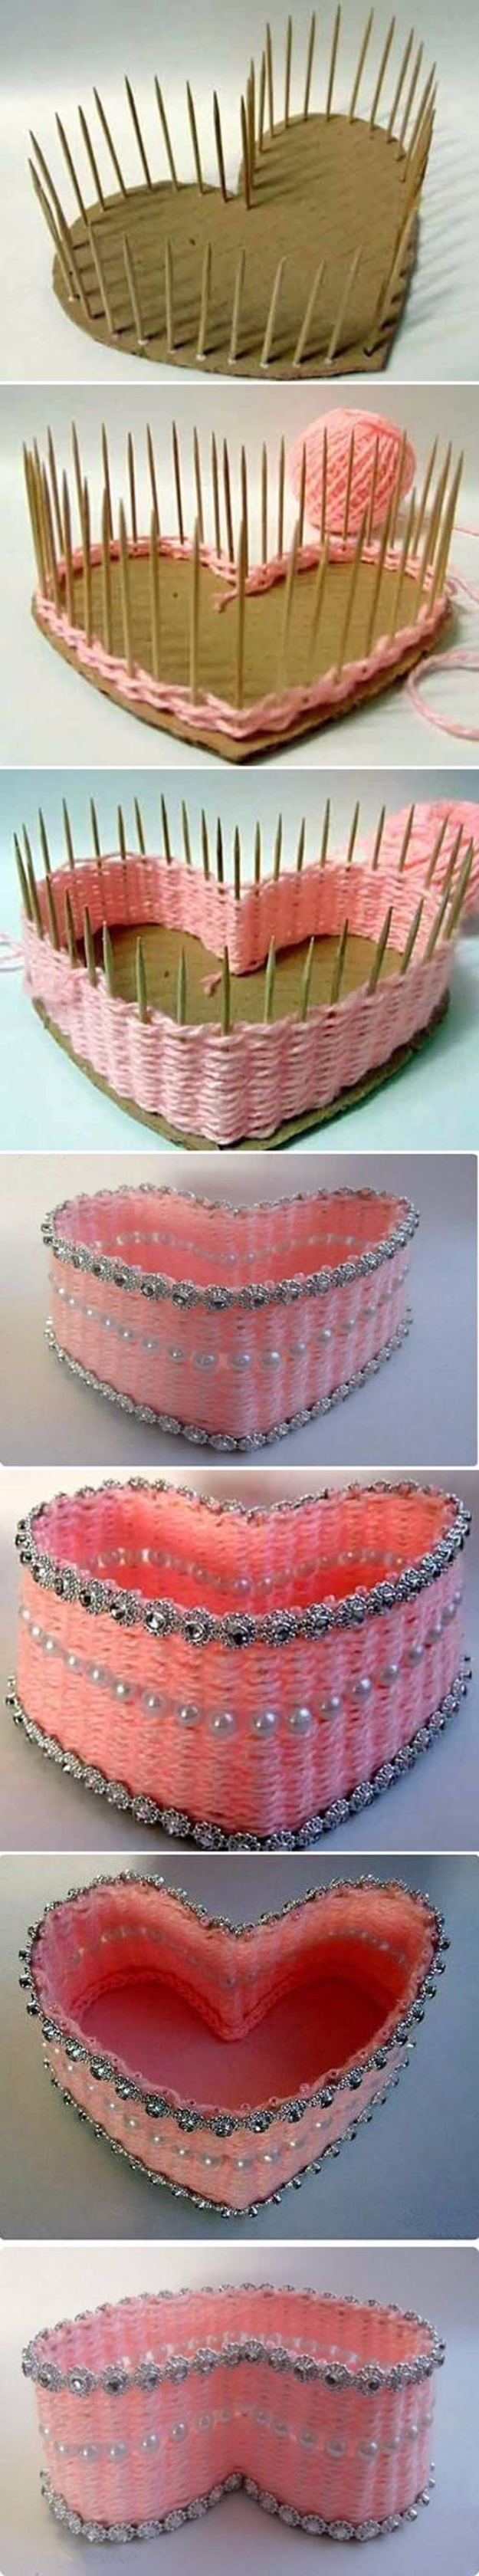 Woven Heart Basket Craft : Cool crafts made with baskets page of diy joy